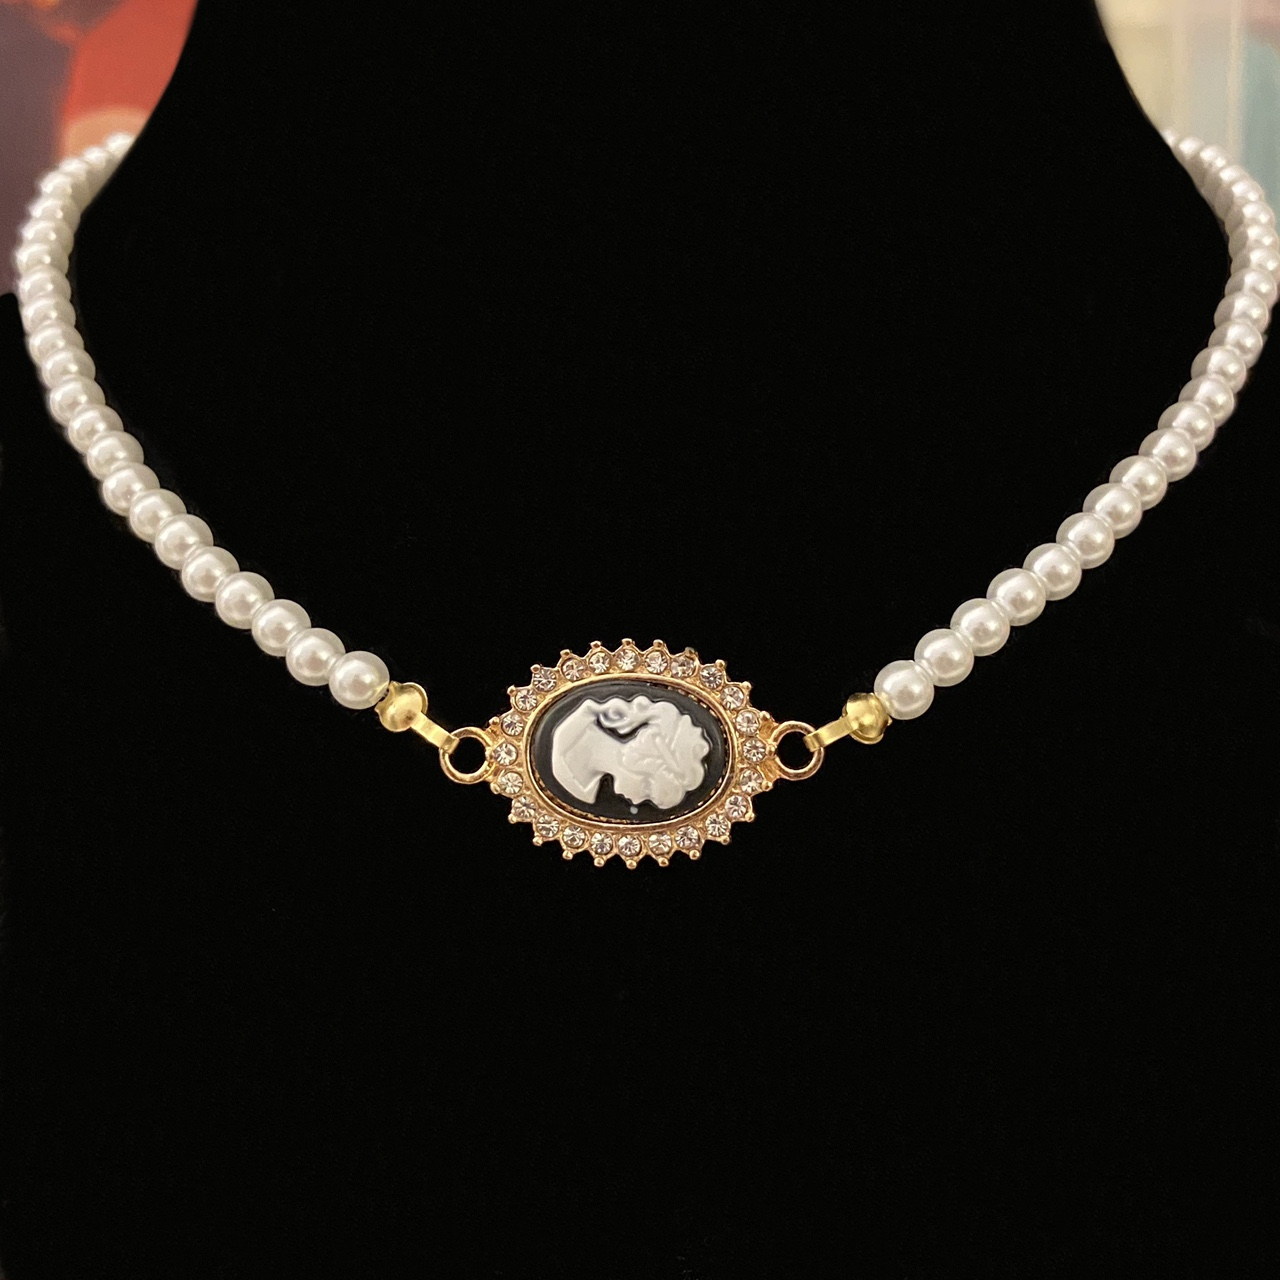 Product Image 1 - Y2k white pearl necklace with